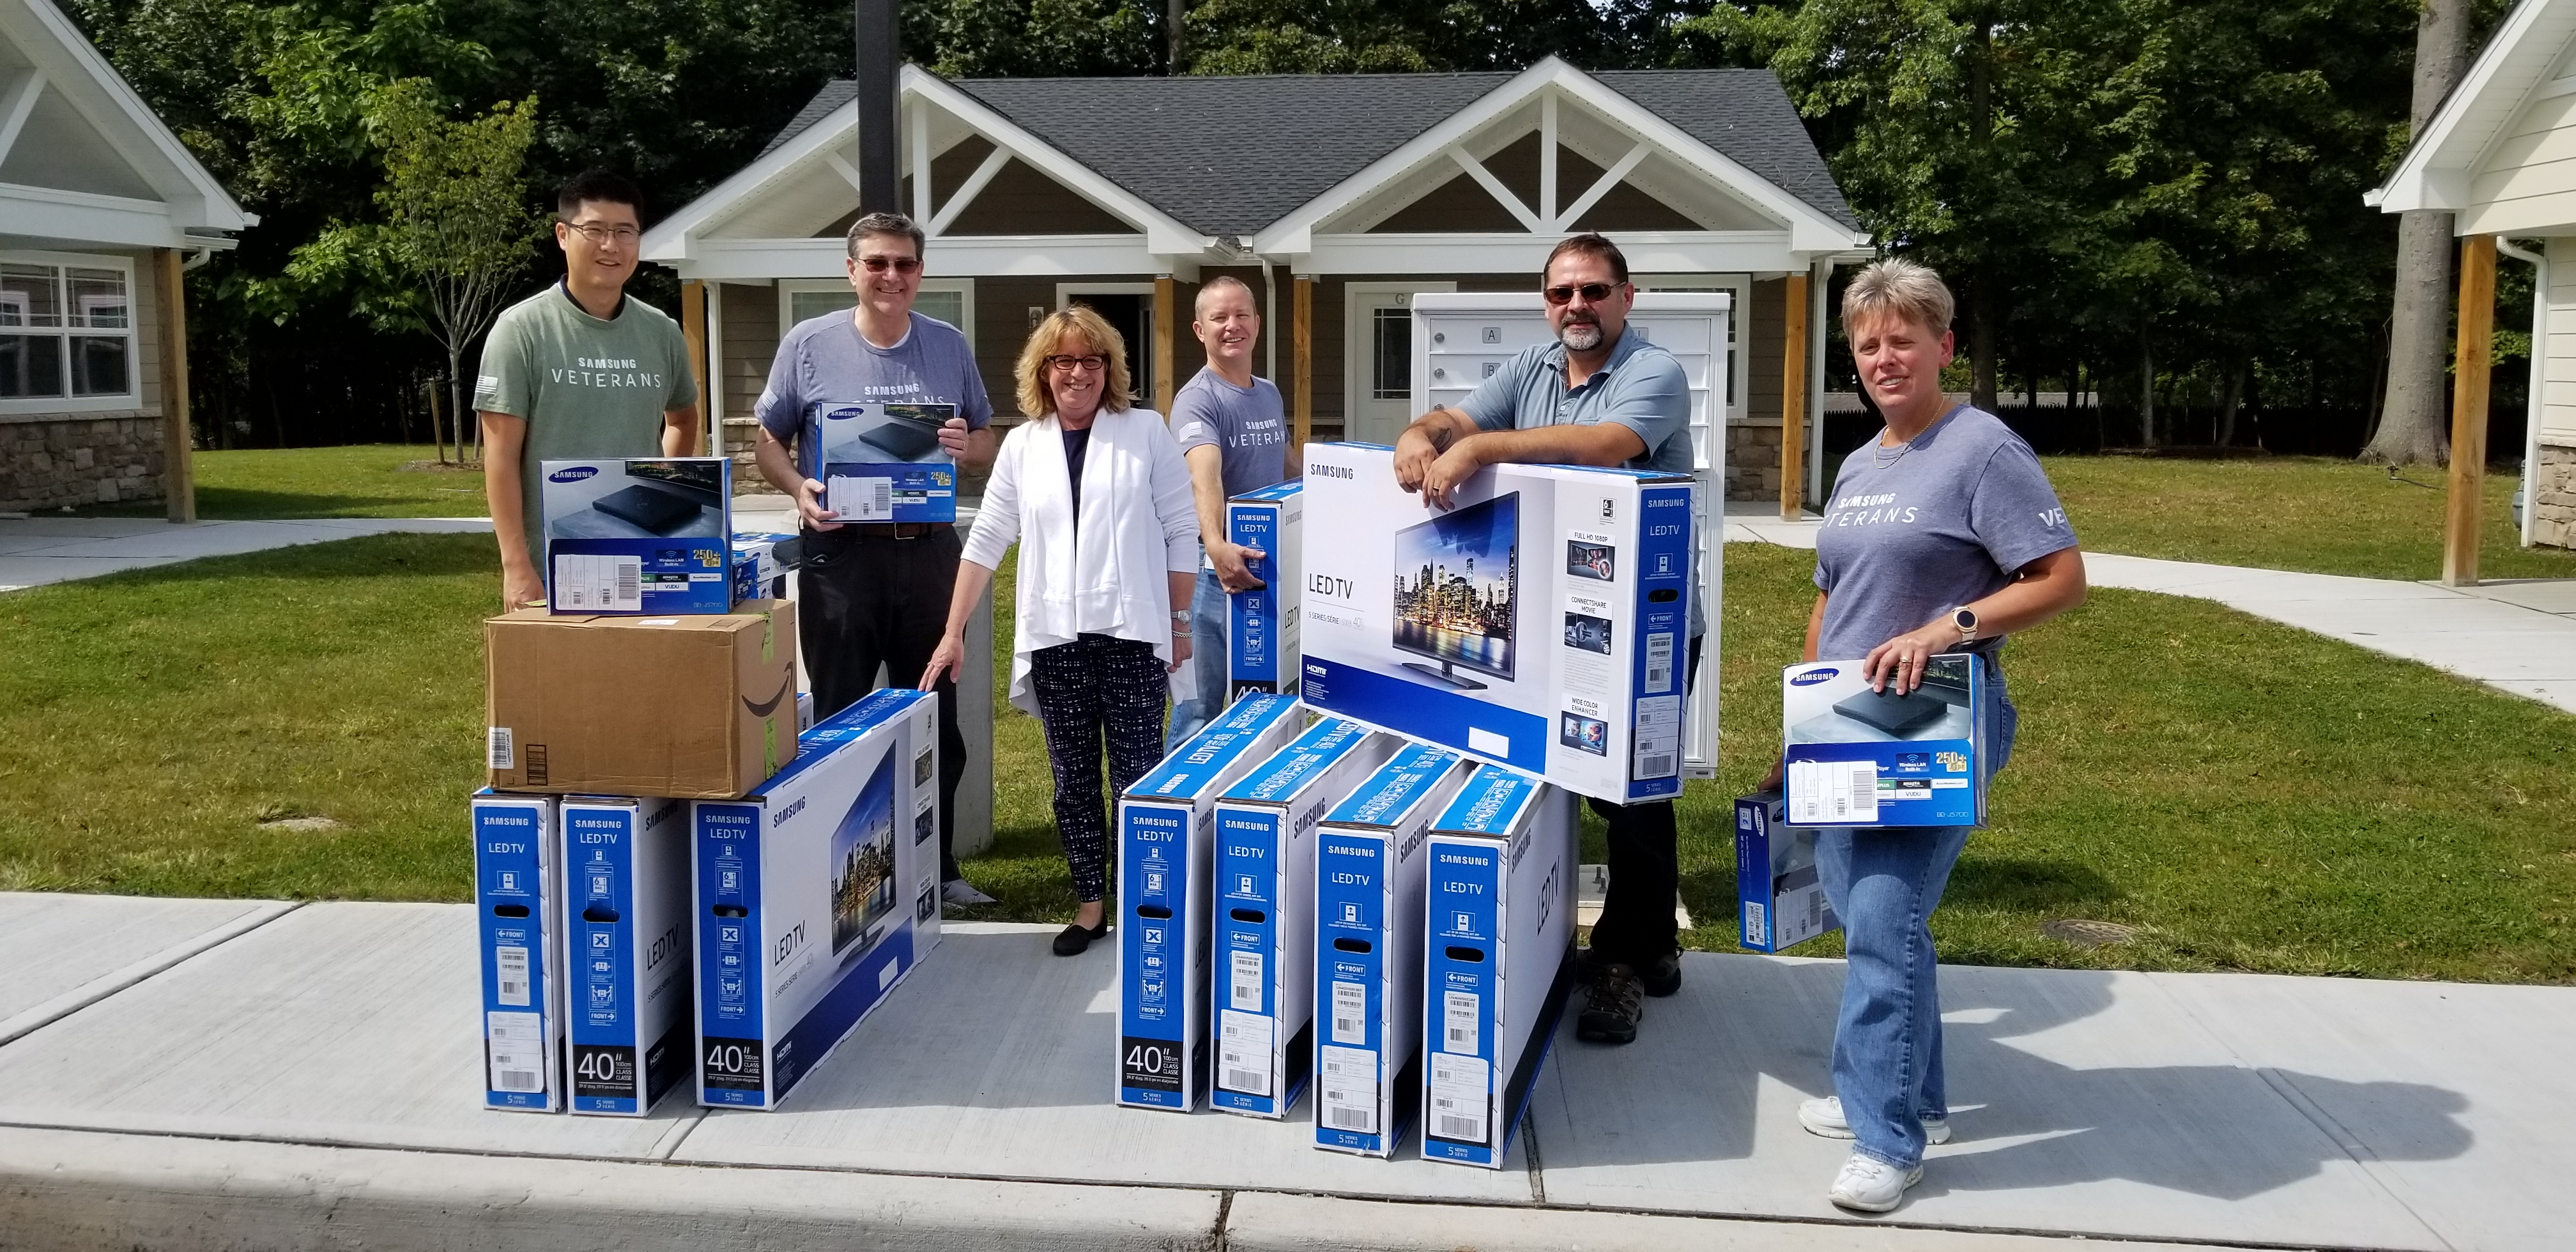 Samsung Donates Home Entertainment Systems to New Veterans